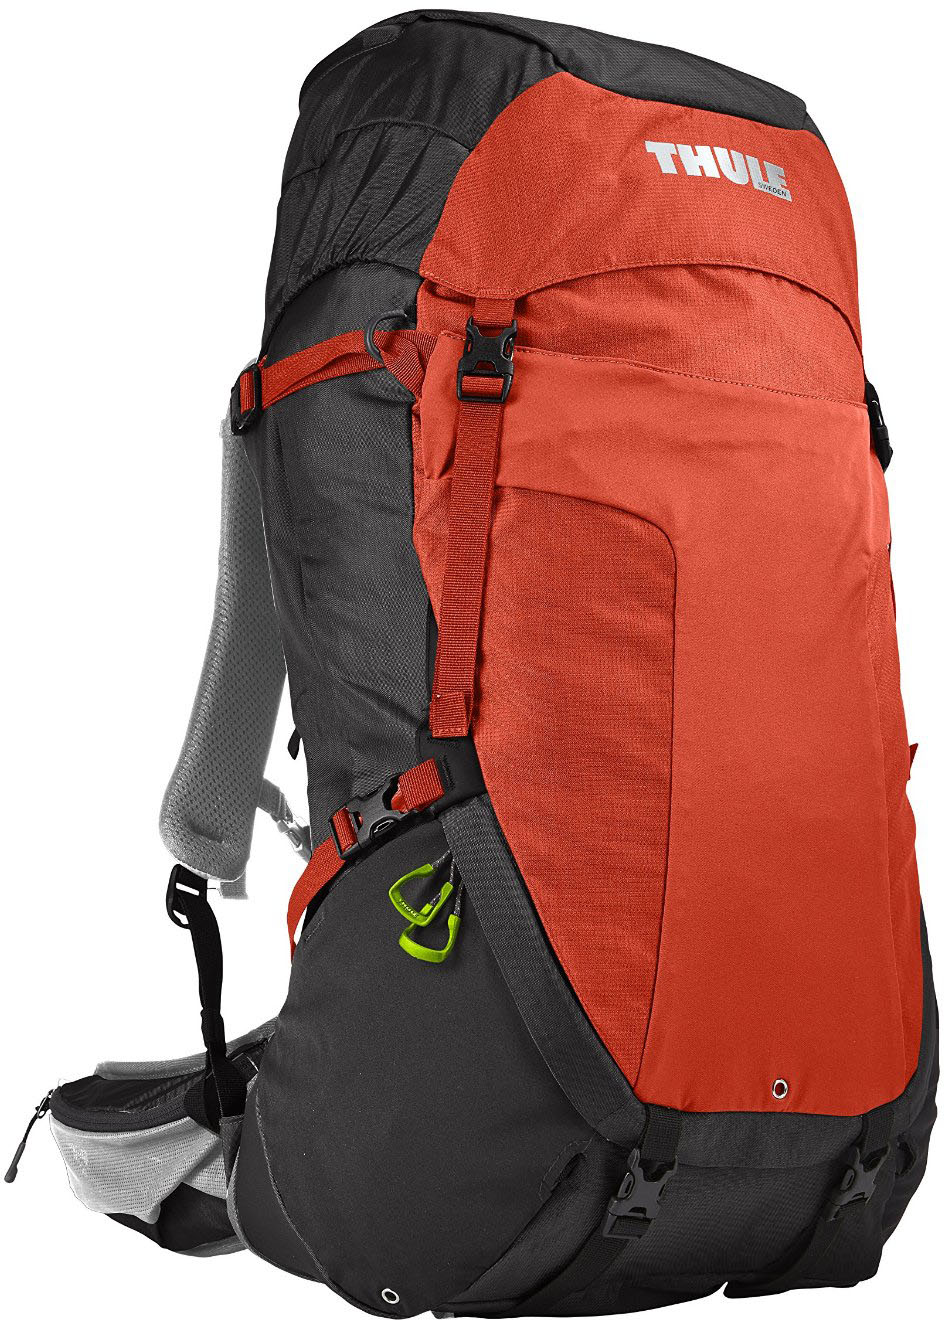 Men's Hiking Pack